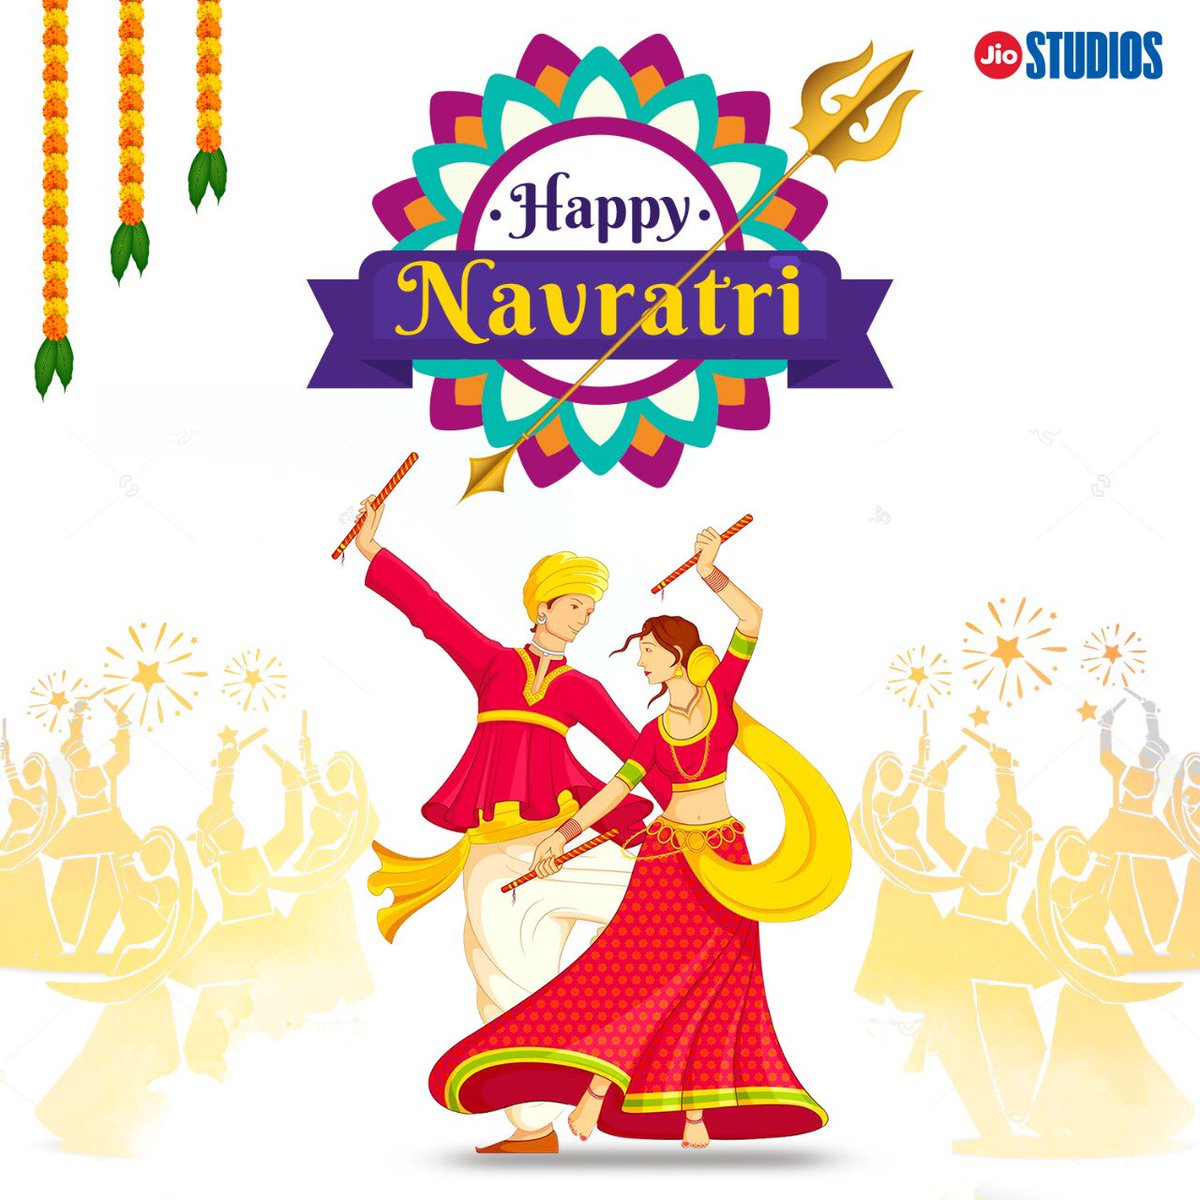 Best wishes for a joyous Navratri! May this auspicious festival bring happiness and prosperity in our lives.